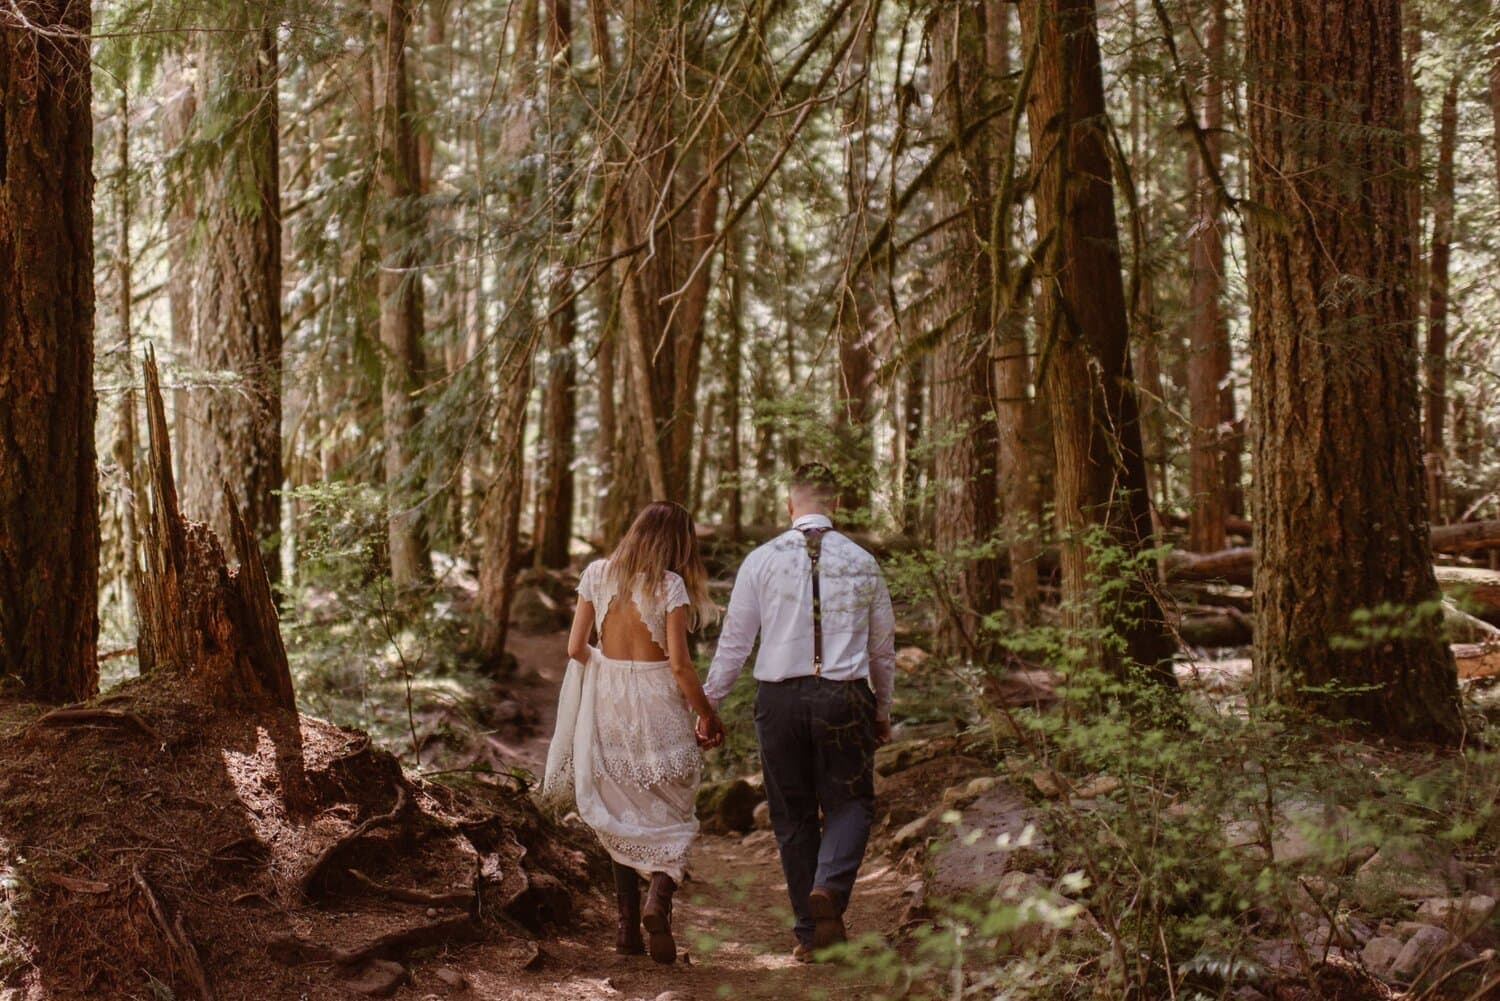 A bride and groom hold hands while walking through a forest.